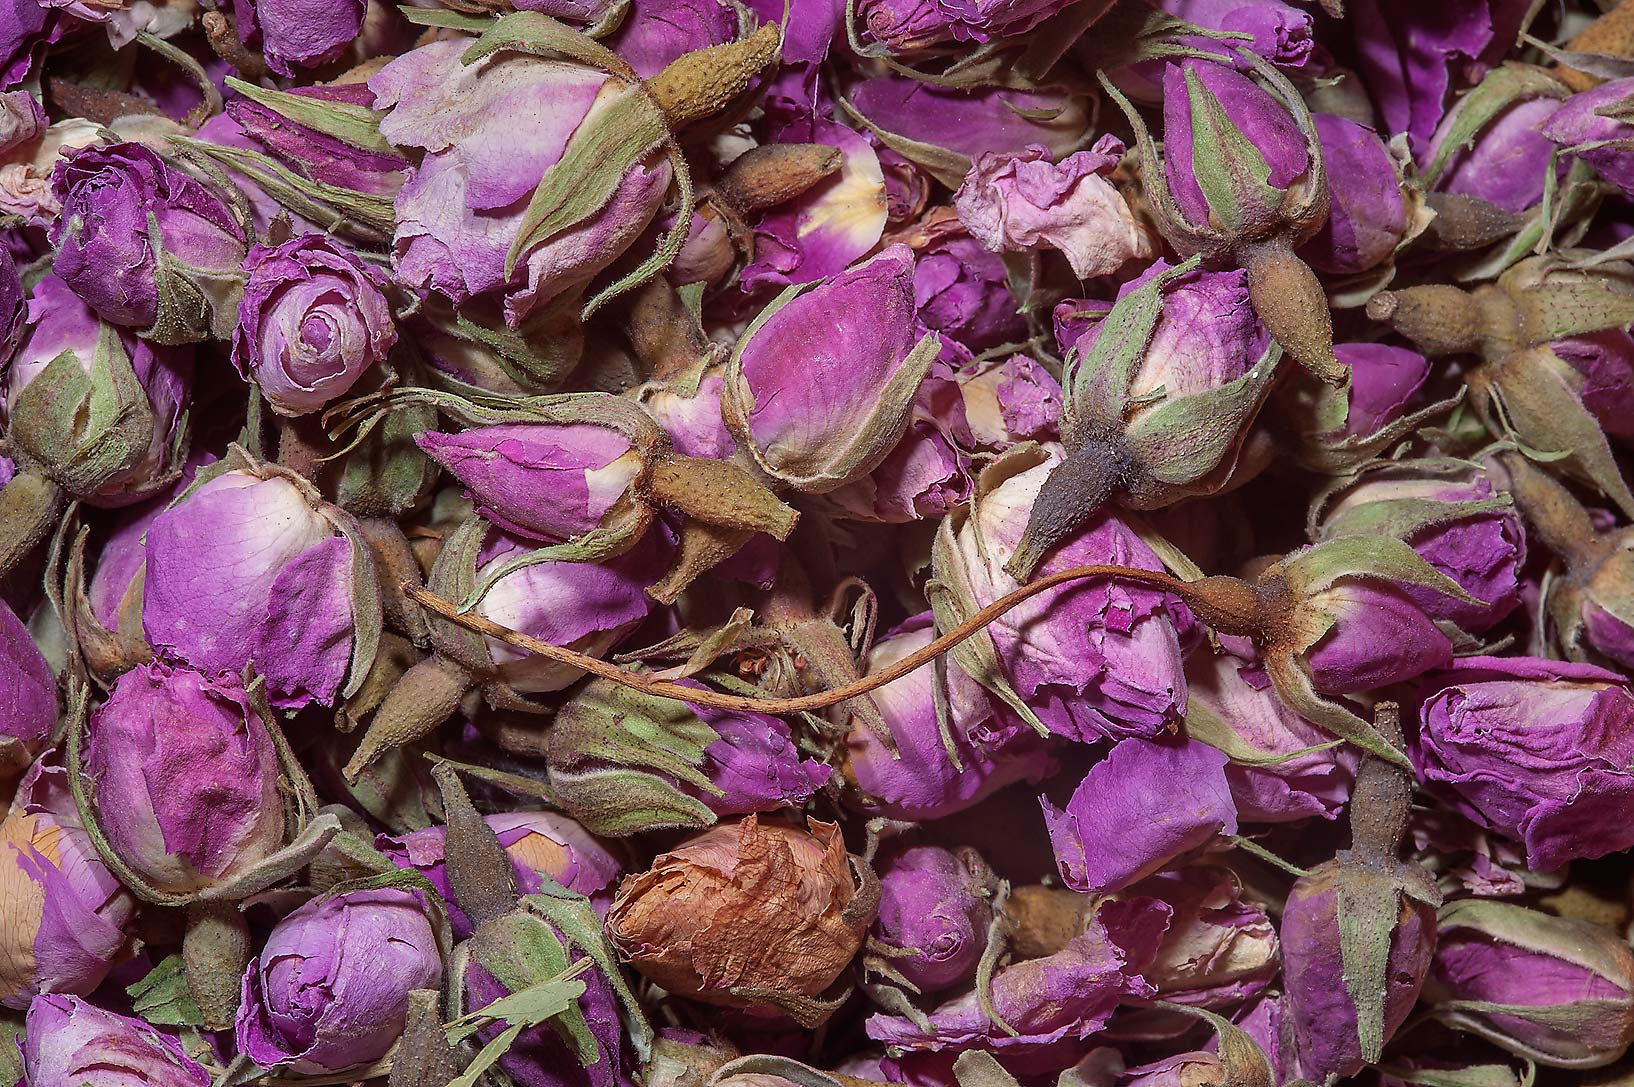 Dry rose buds in spice section of Souq Waqif (Old Market). Doha, Qatar